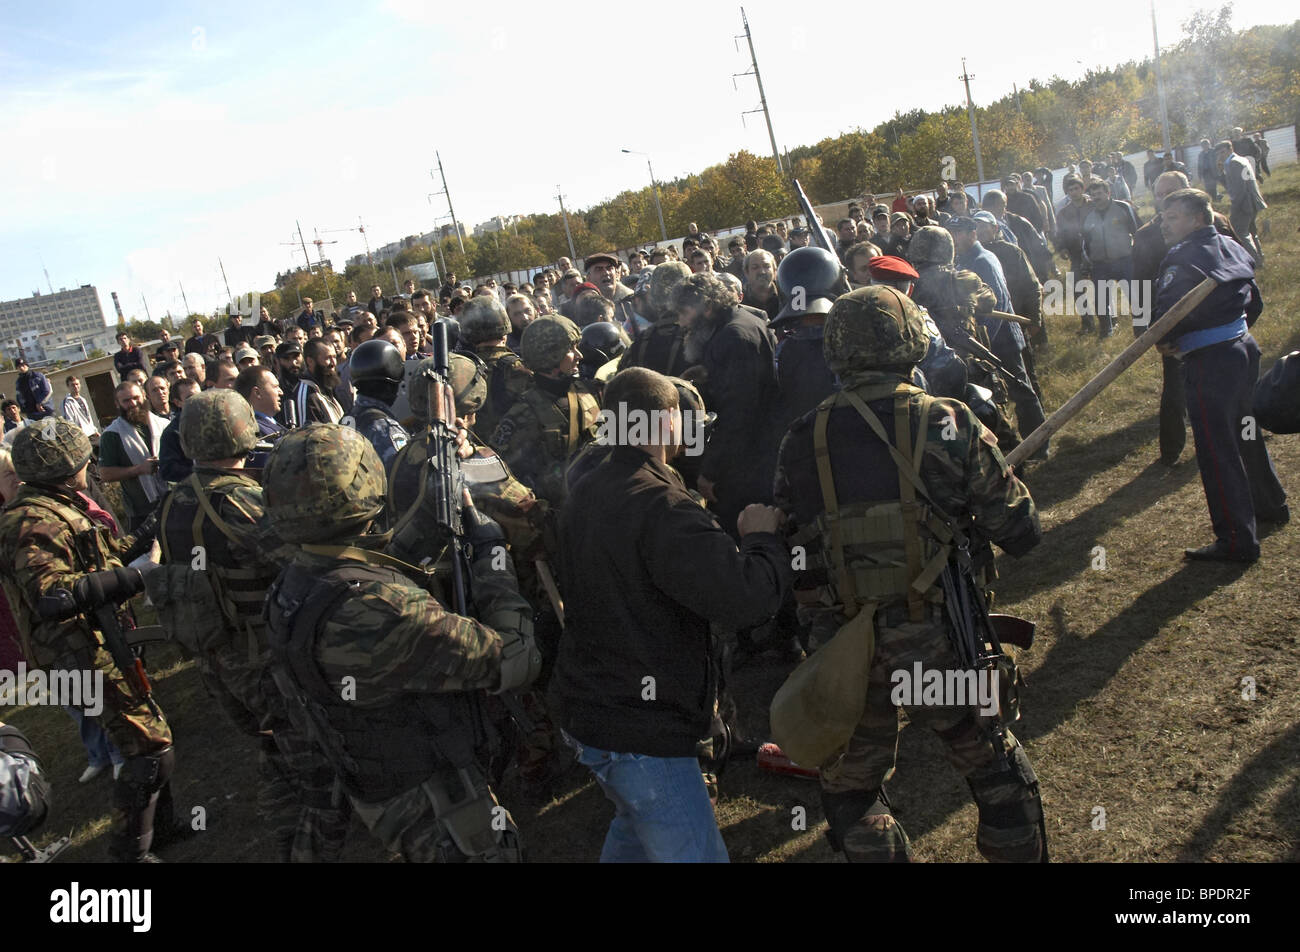 Mass clashes with Crimean Tatars over illegal land seizures in Simferopol - Stock Image